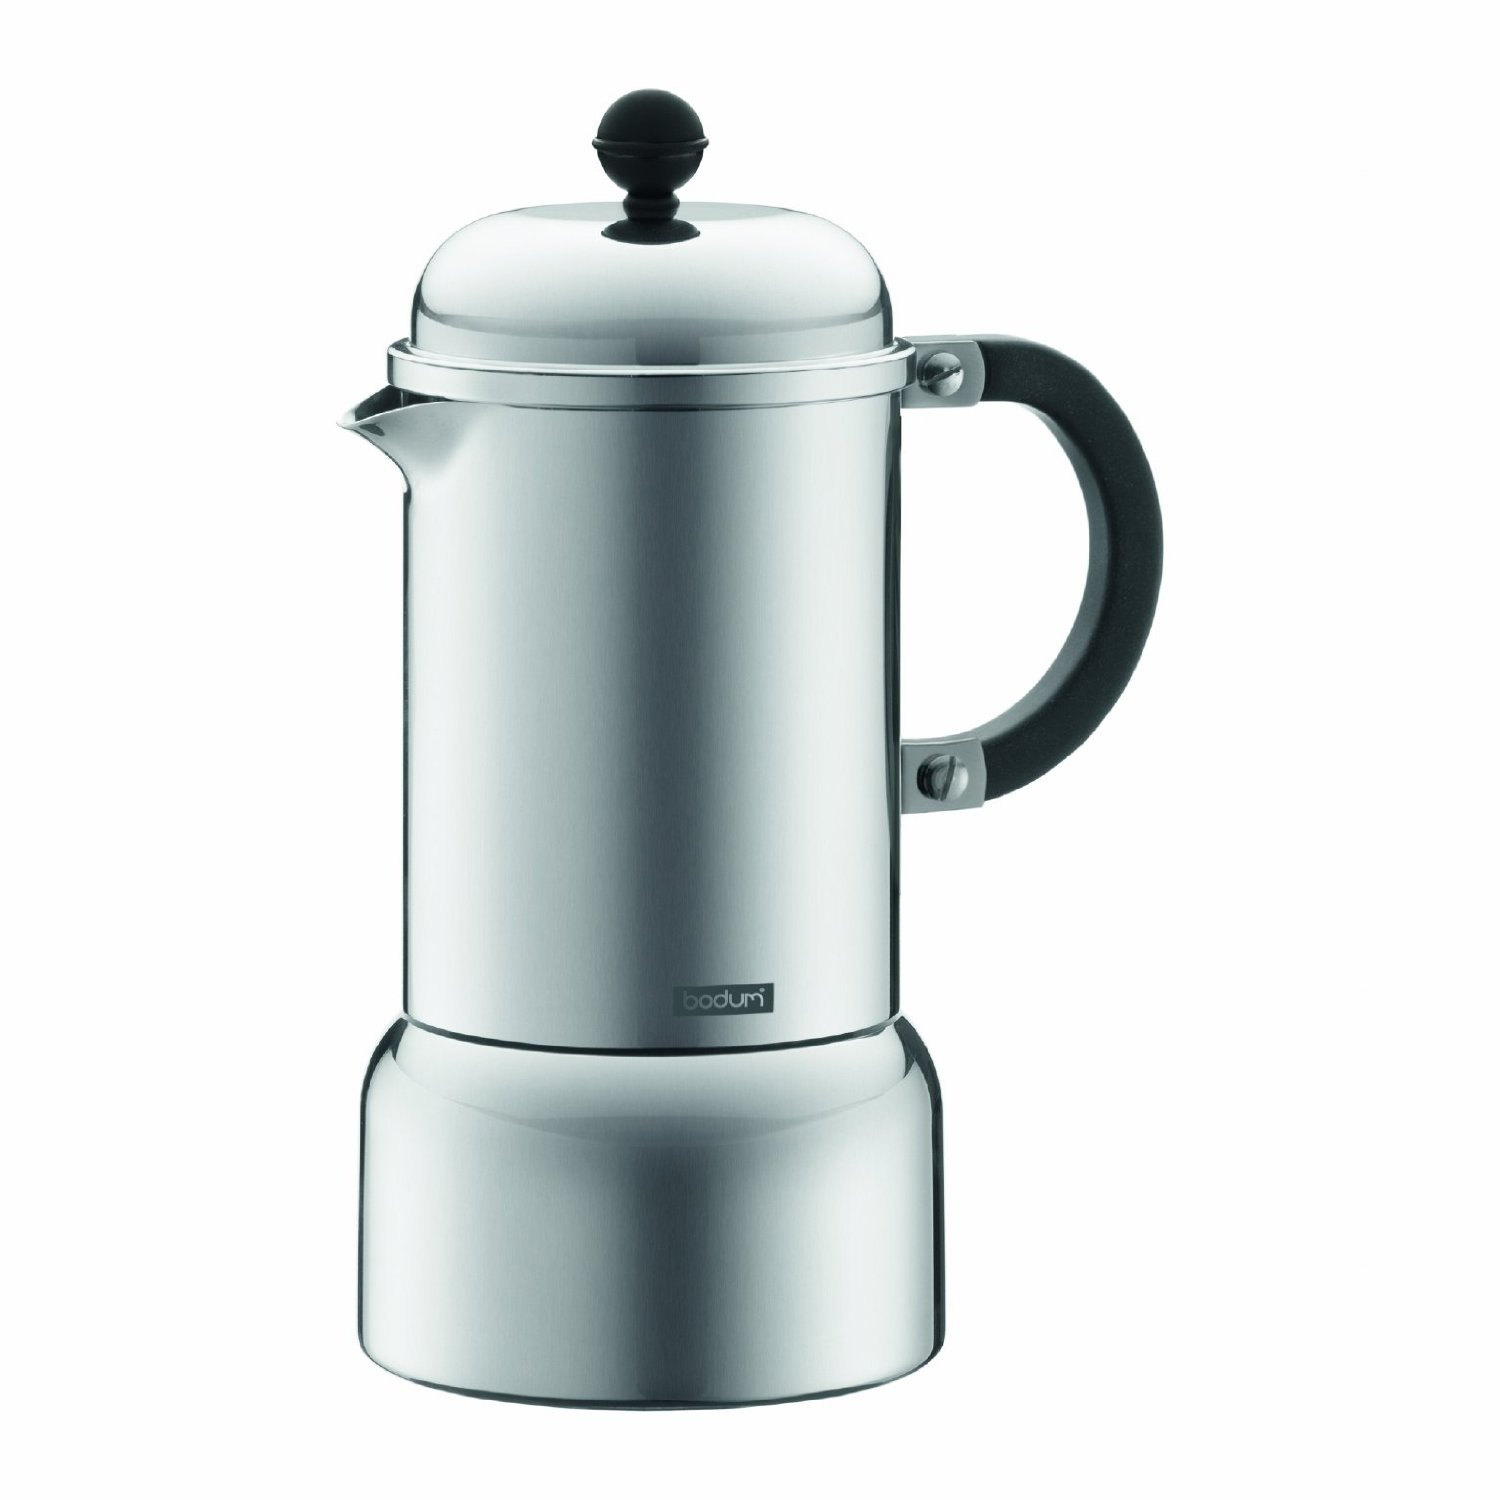 Yourbestcoffeemachine for Best coffee percolator